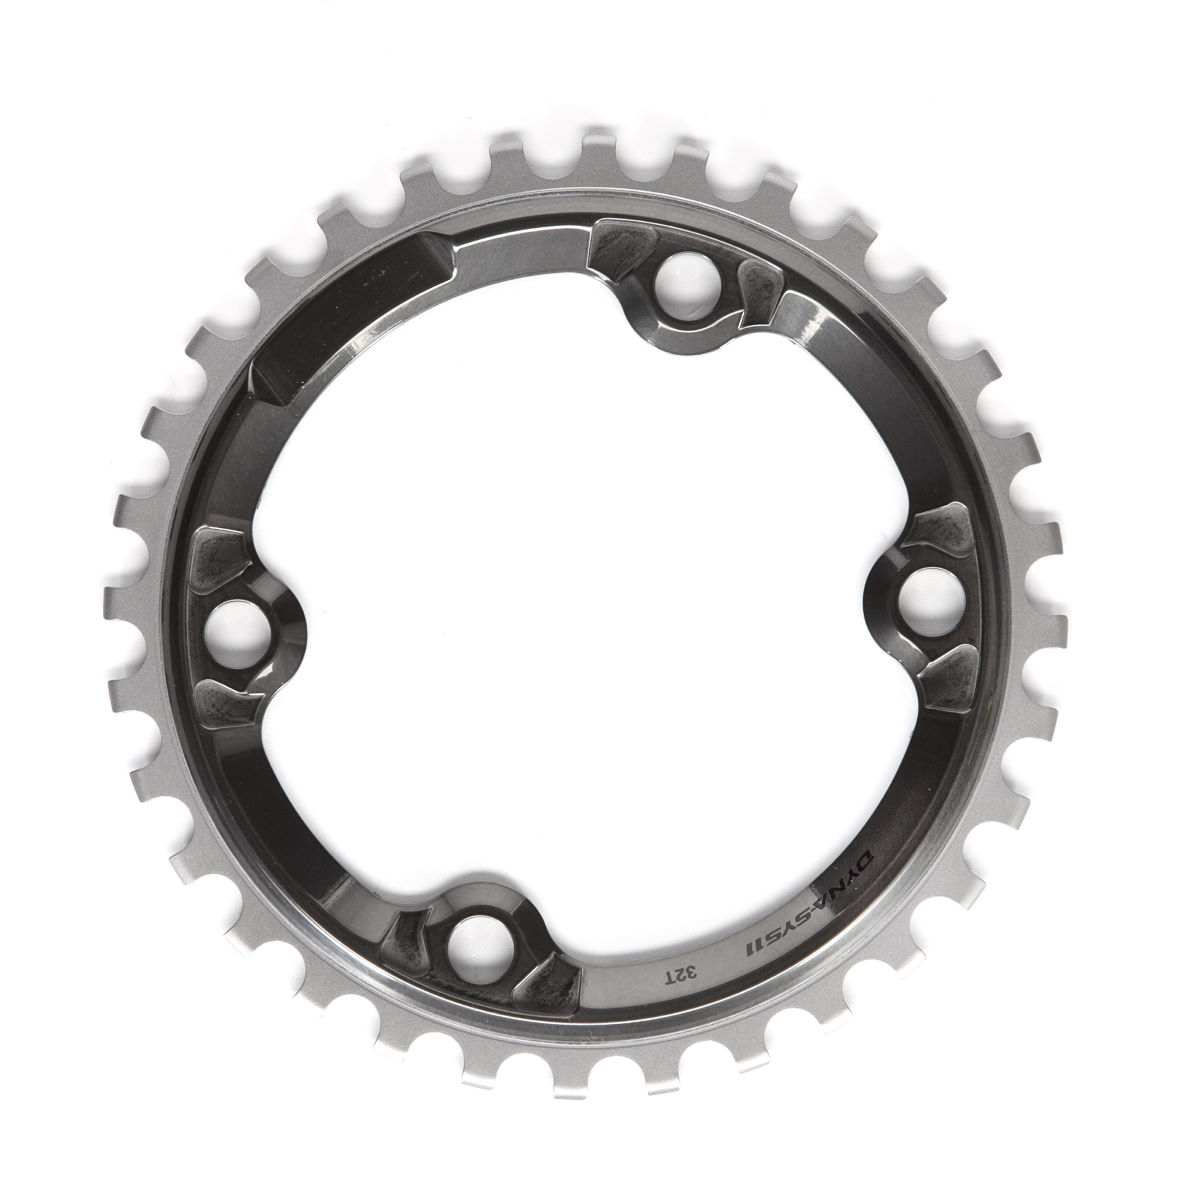 Plateau de rétention simple Shimano XTR M9000/9020 - 30T Plateaux